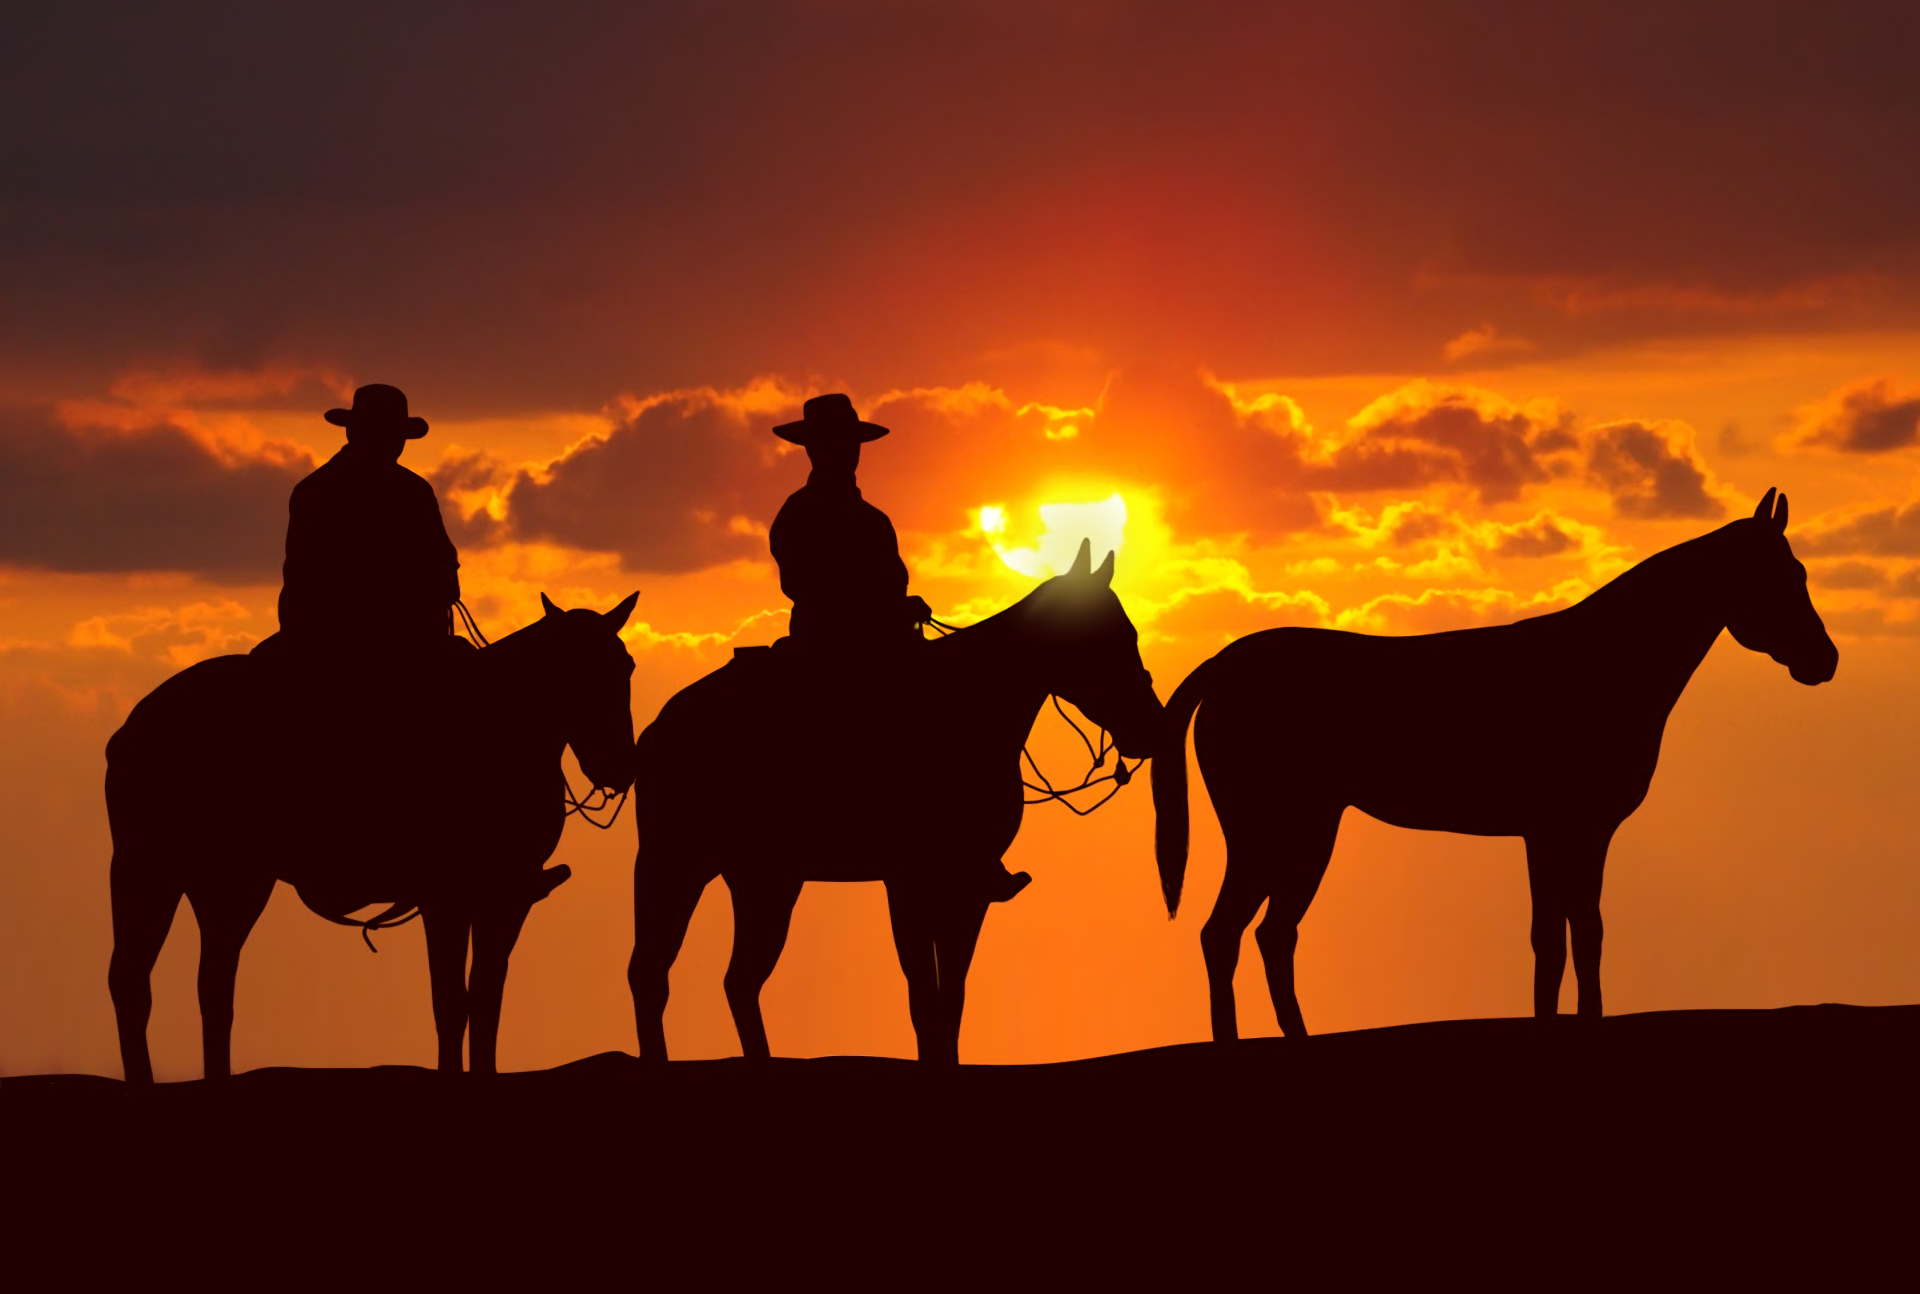 cowgirl silhouett wallpaper - photo #35